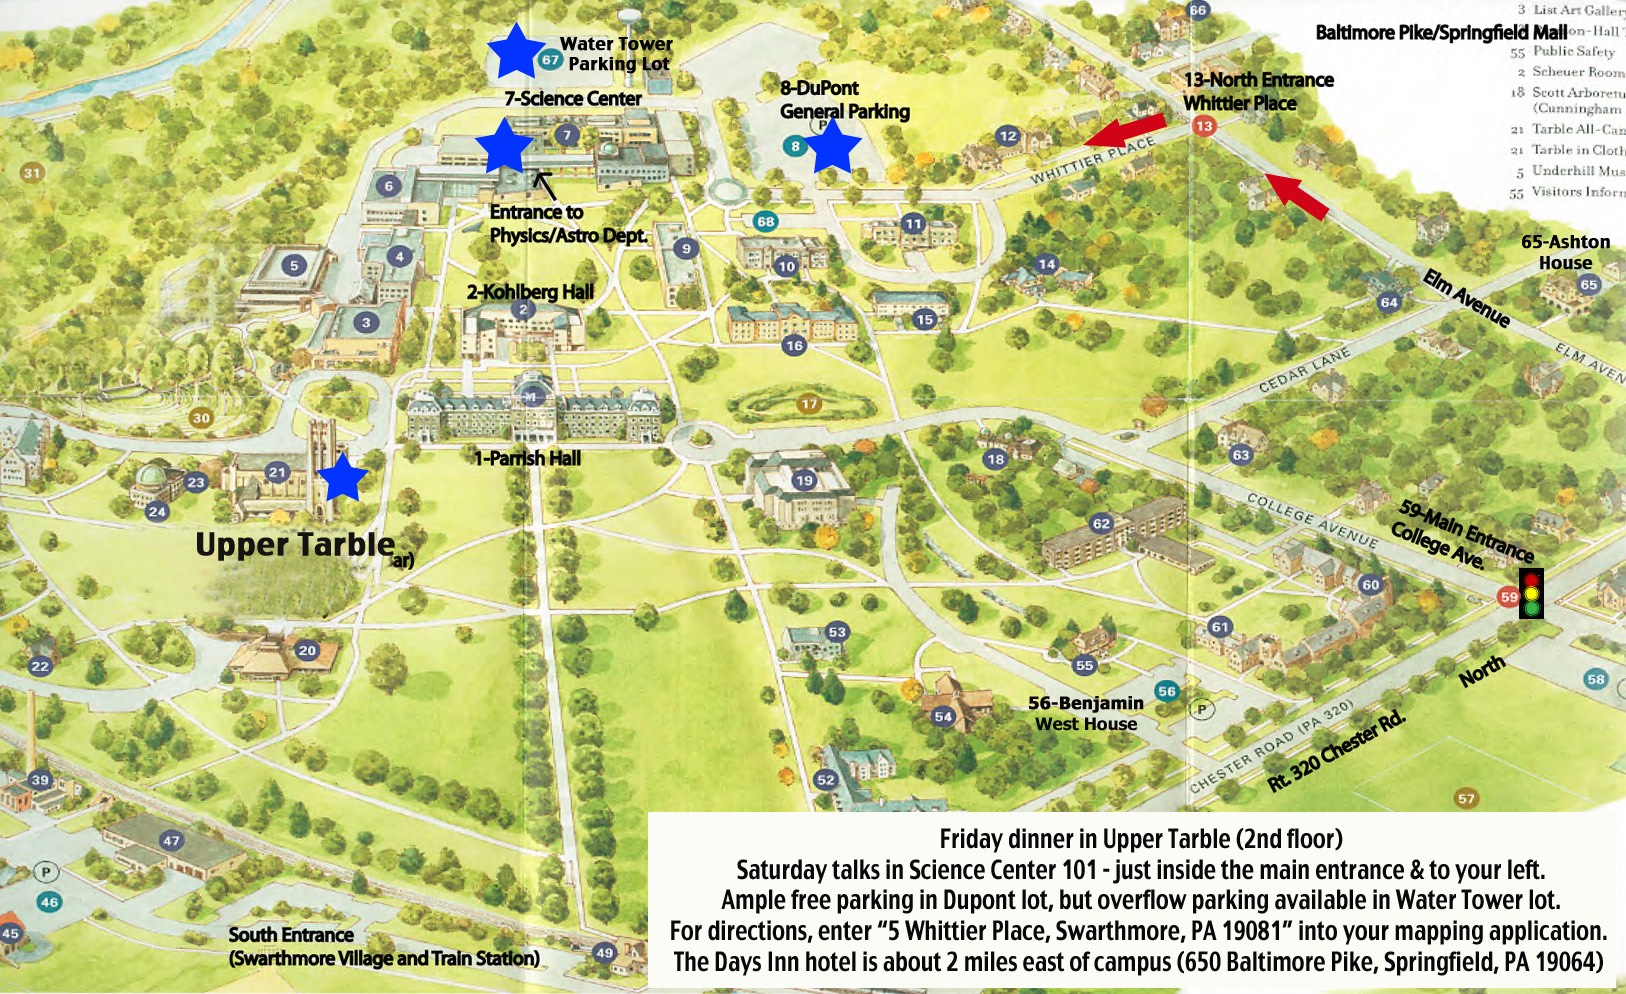 Swarthmore Campus Map KNAC: Symposium 2014 at Swarthmore College